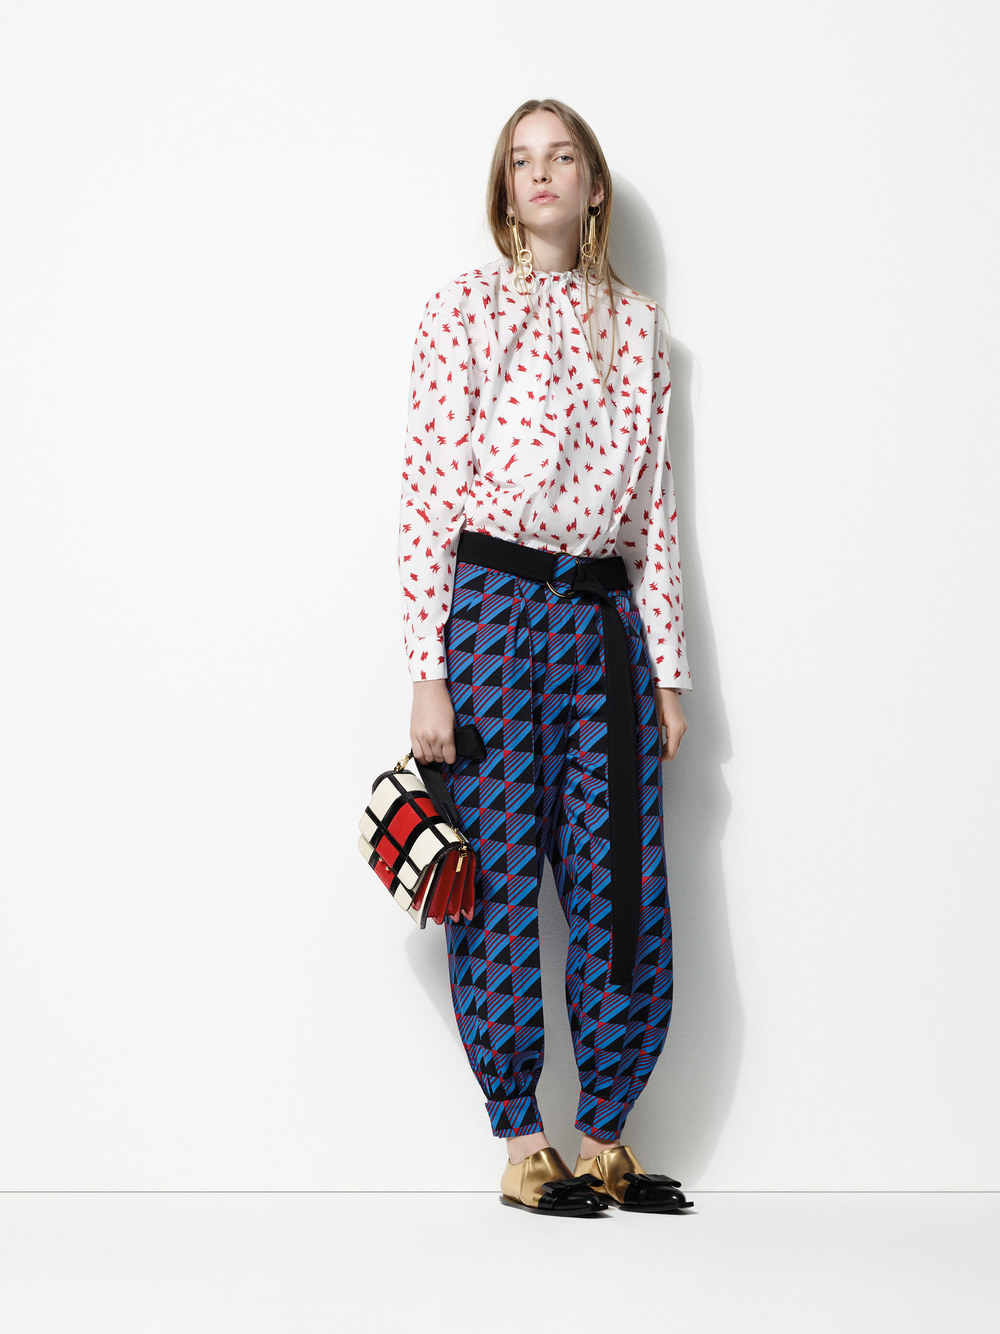 marni-pre-fall-2016-lookbook-20.jpg